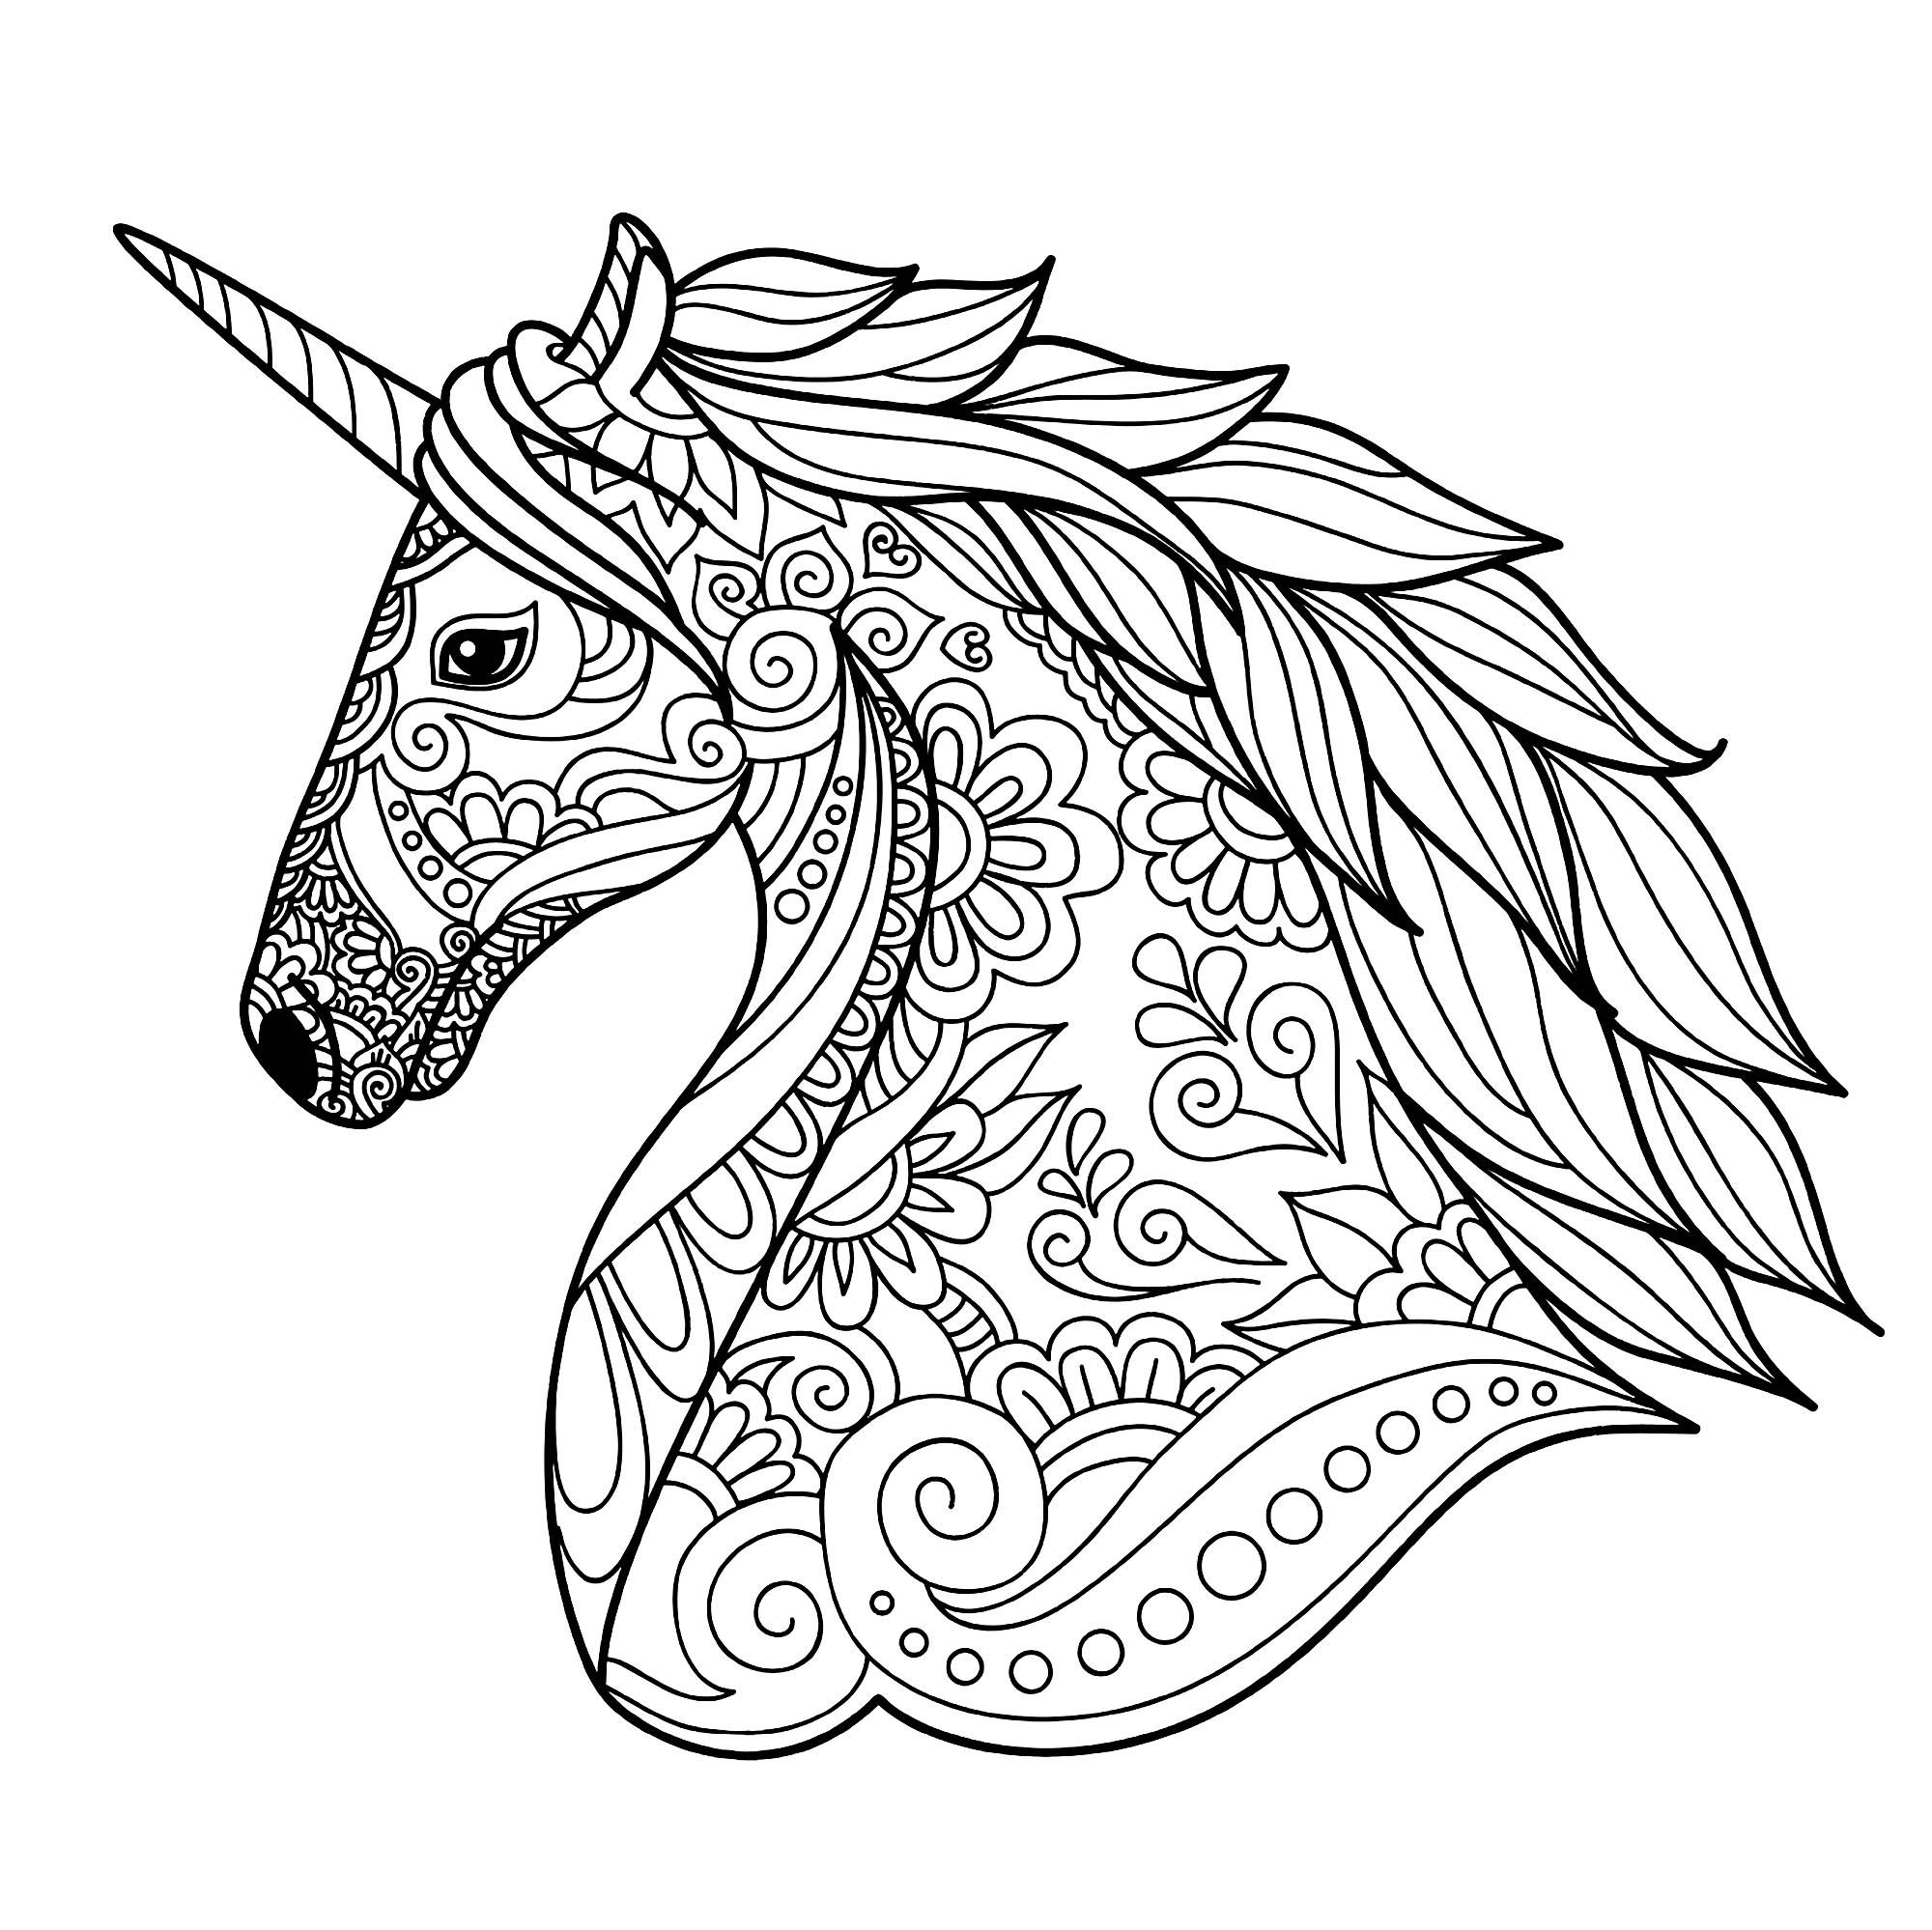 Printable Unicorn Coloring Pages Ideas For Kids Coloring